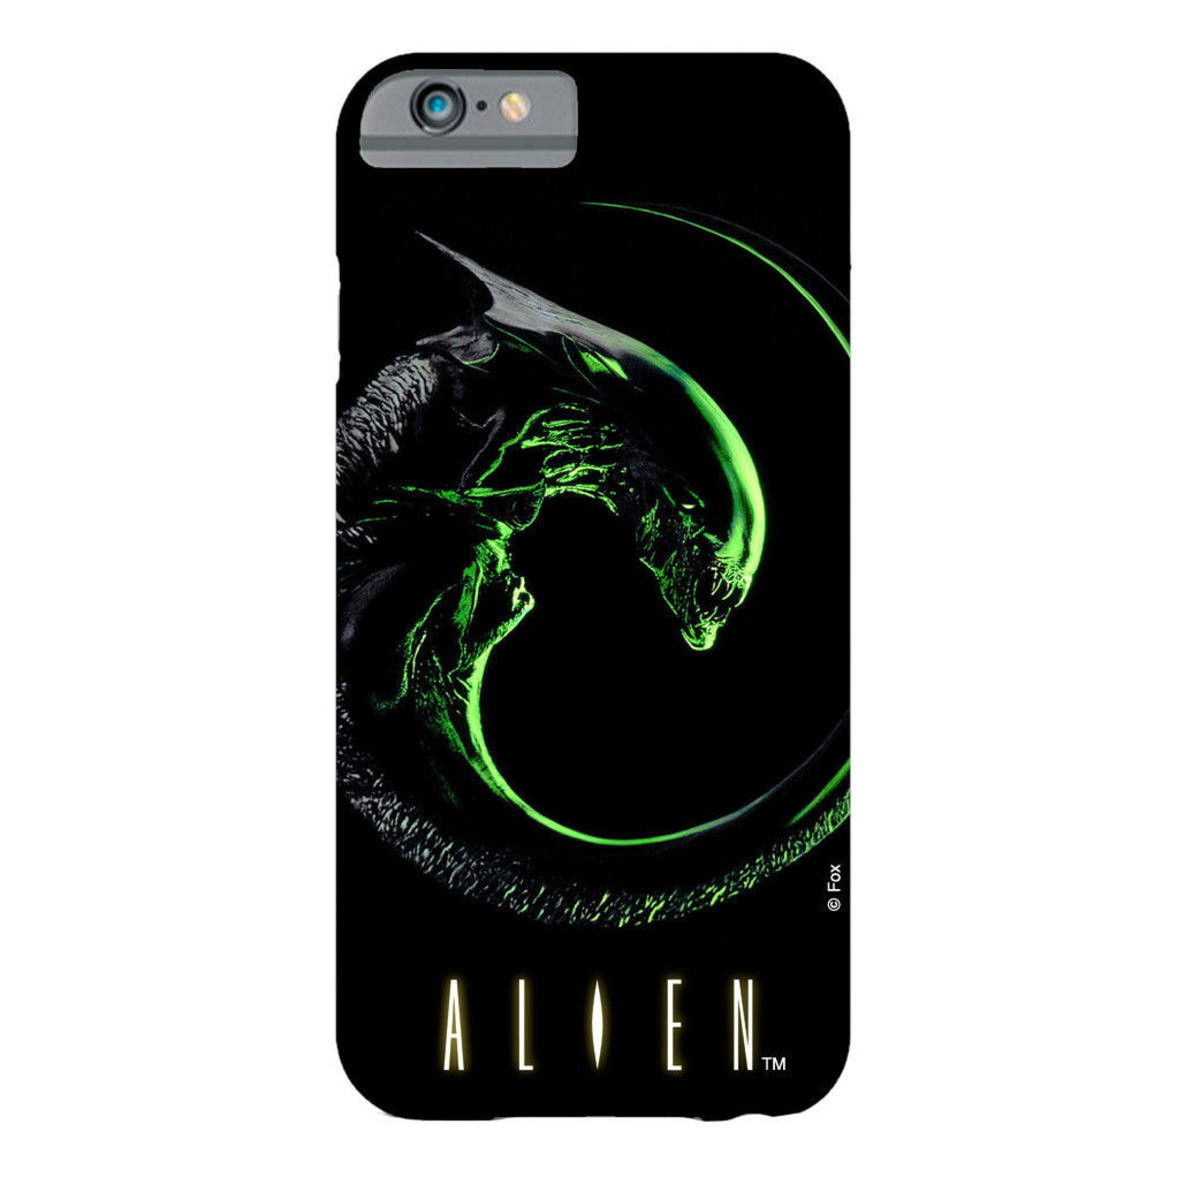 kryt na mobil Alien - iPhone 6 Plus Alien 3 - GS80219